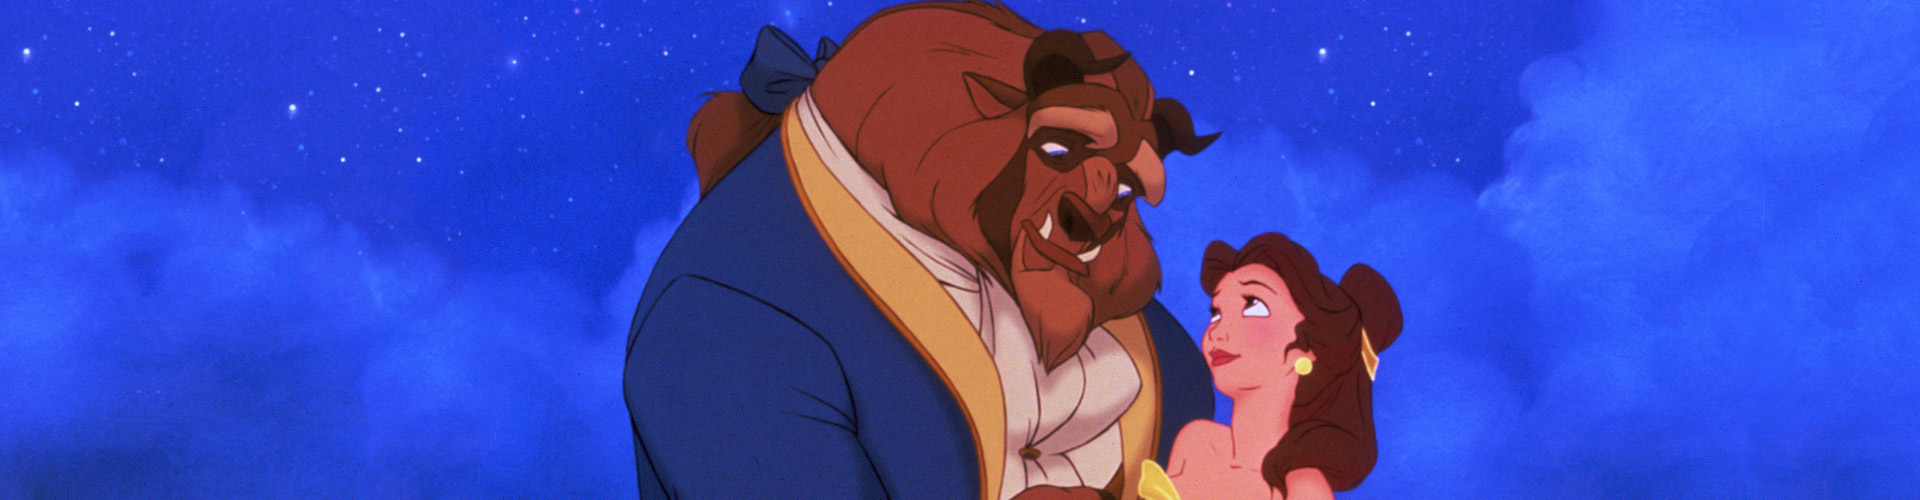 beauty-and-the-beast-facts-header.jpg